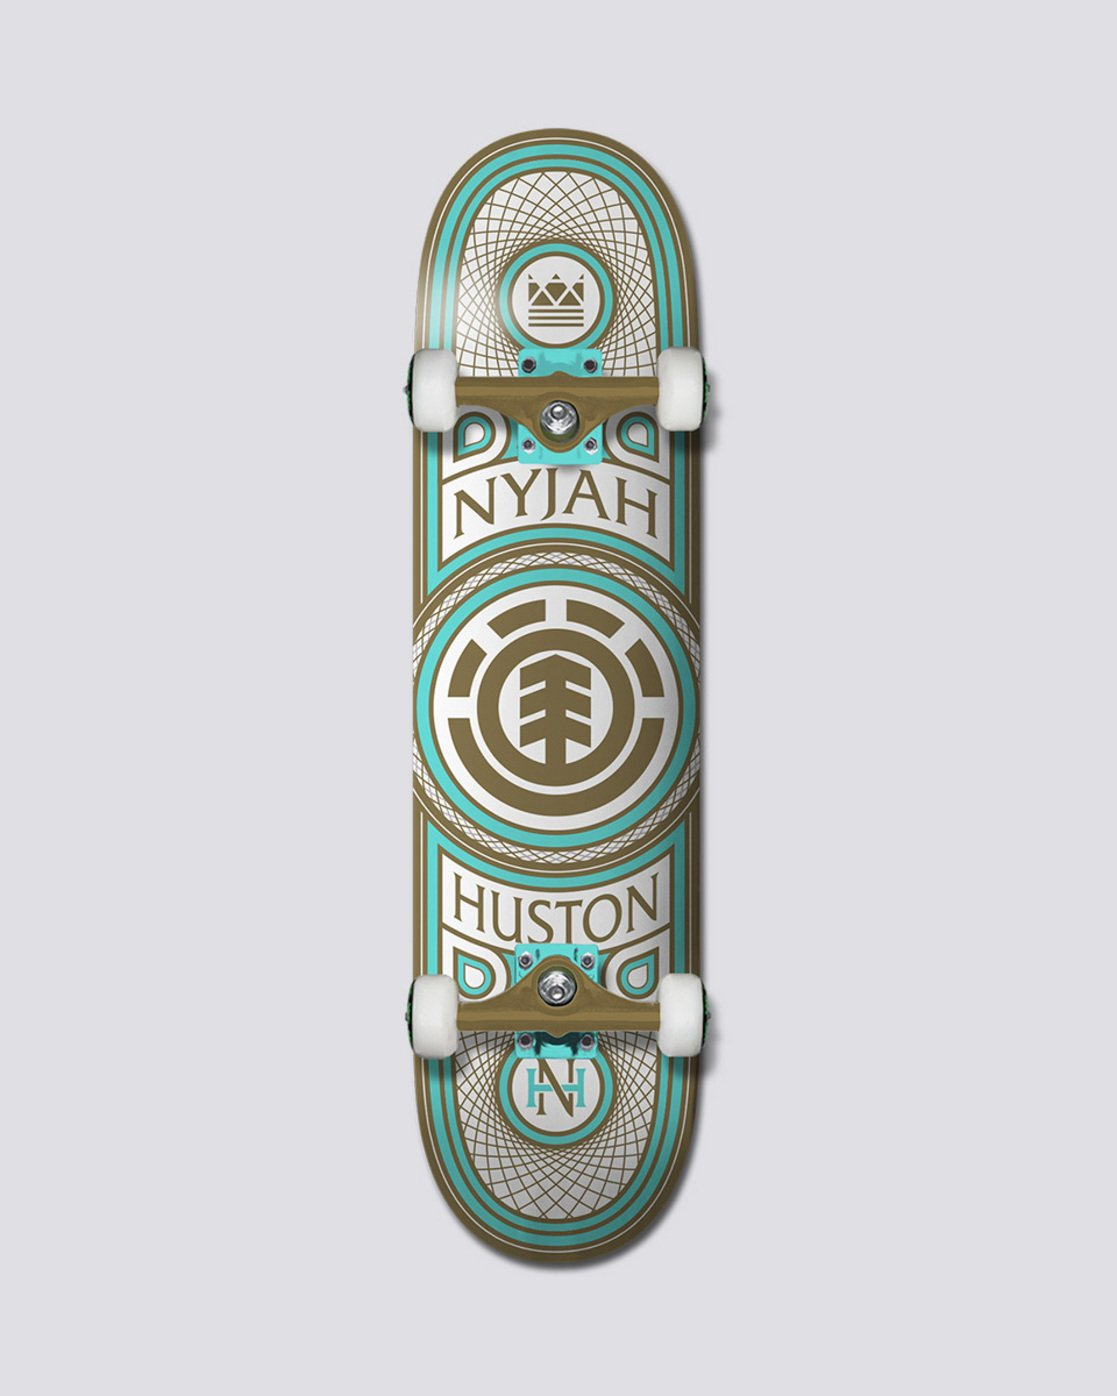 0 Nyjah Huston - Gilded Complete - 7.7 / 7.5  COPRVNHG Element